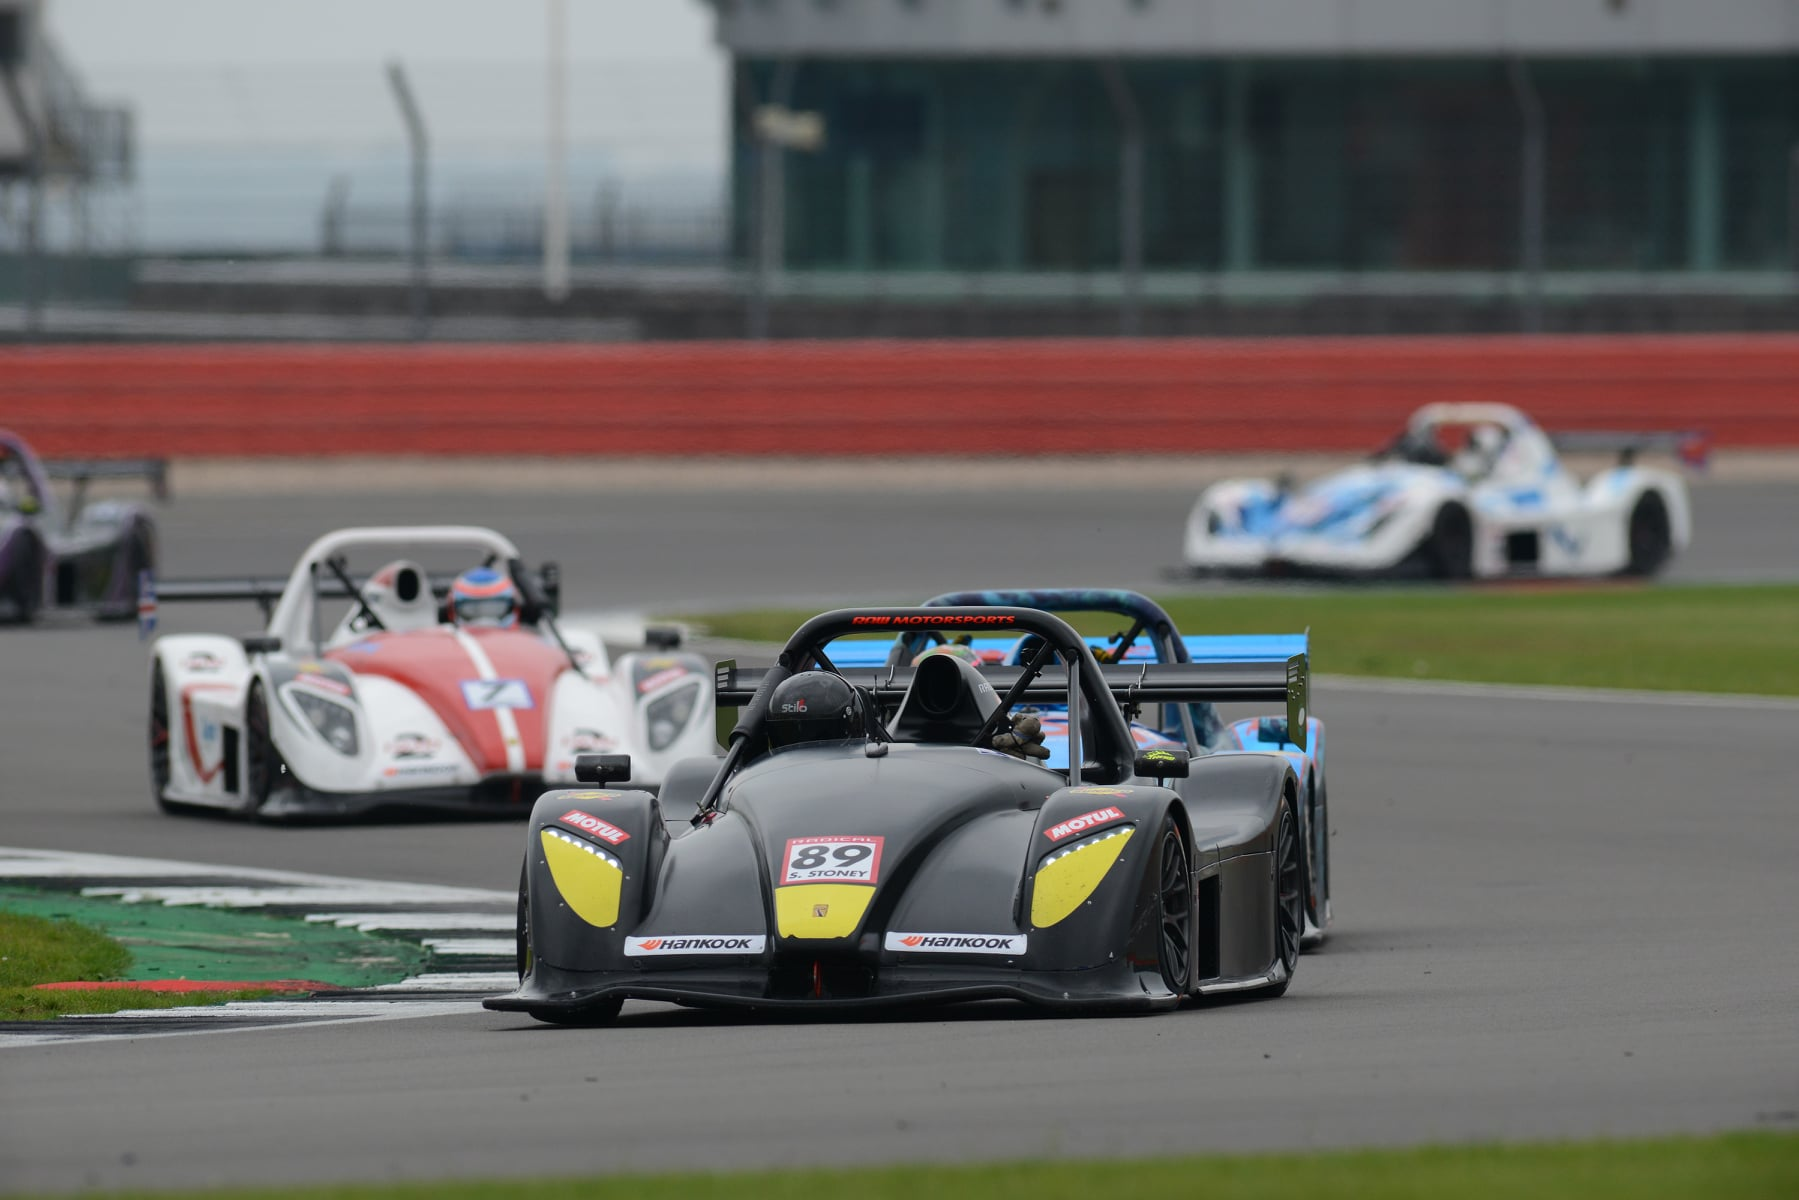 The 2020 Radical Challenge Championship heats up as it reaches the season midpoint at the historic Donington Park circuit